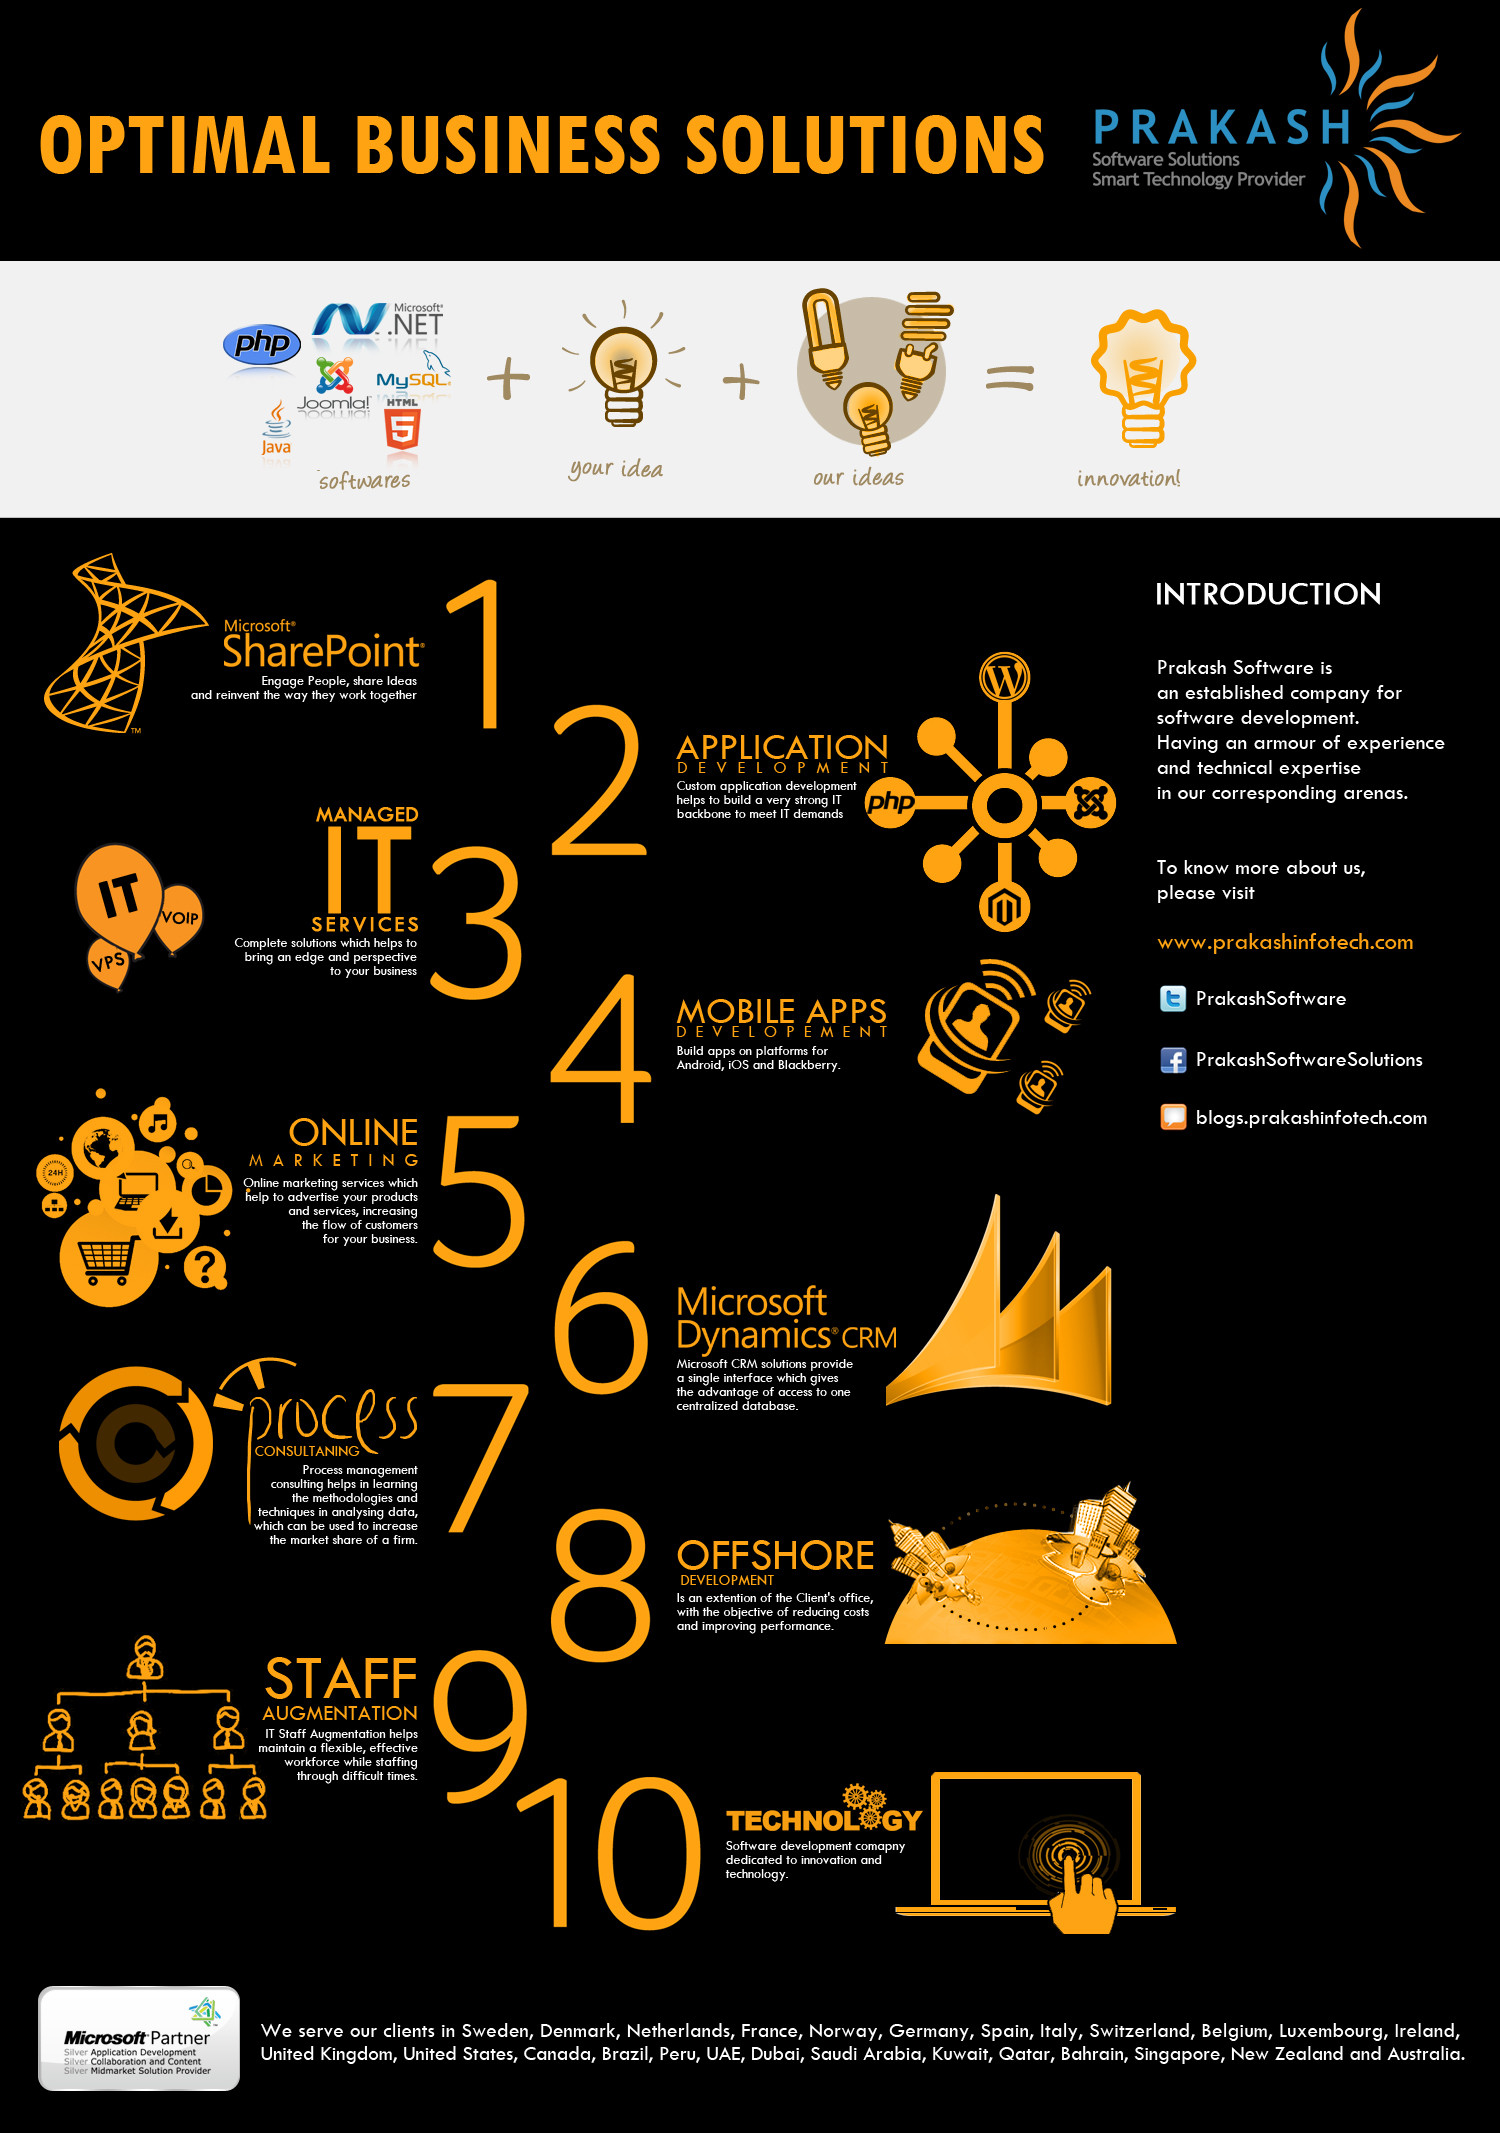 The Optimal Business Solutions Infographic